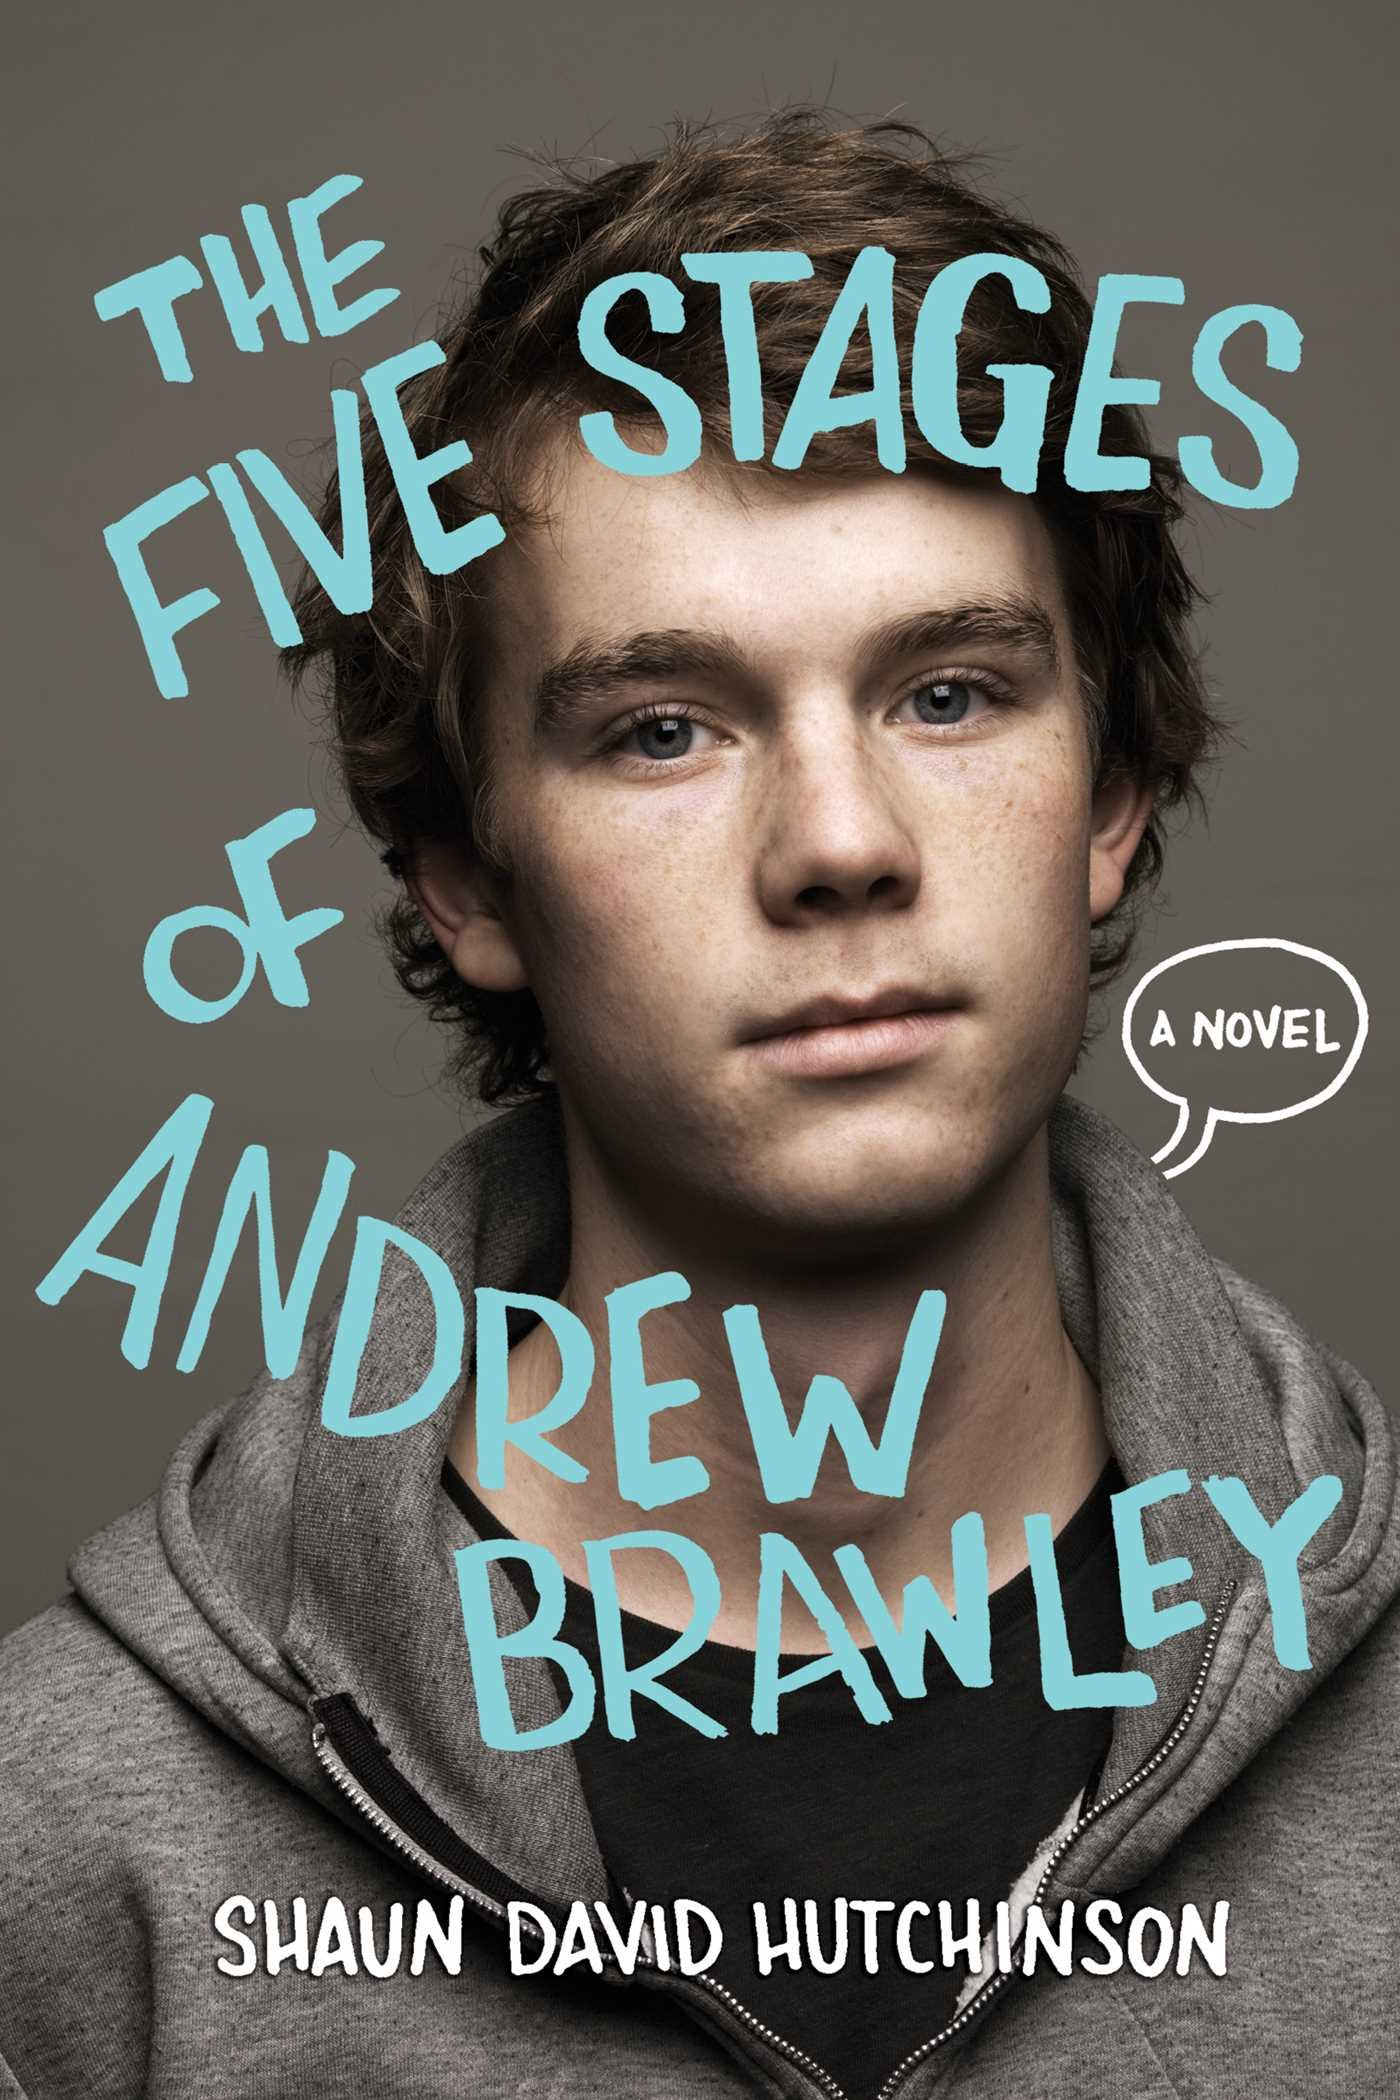 Image result for the five stages of andrew brawley